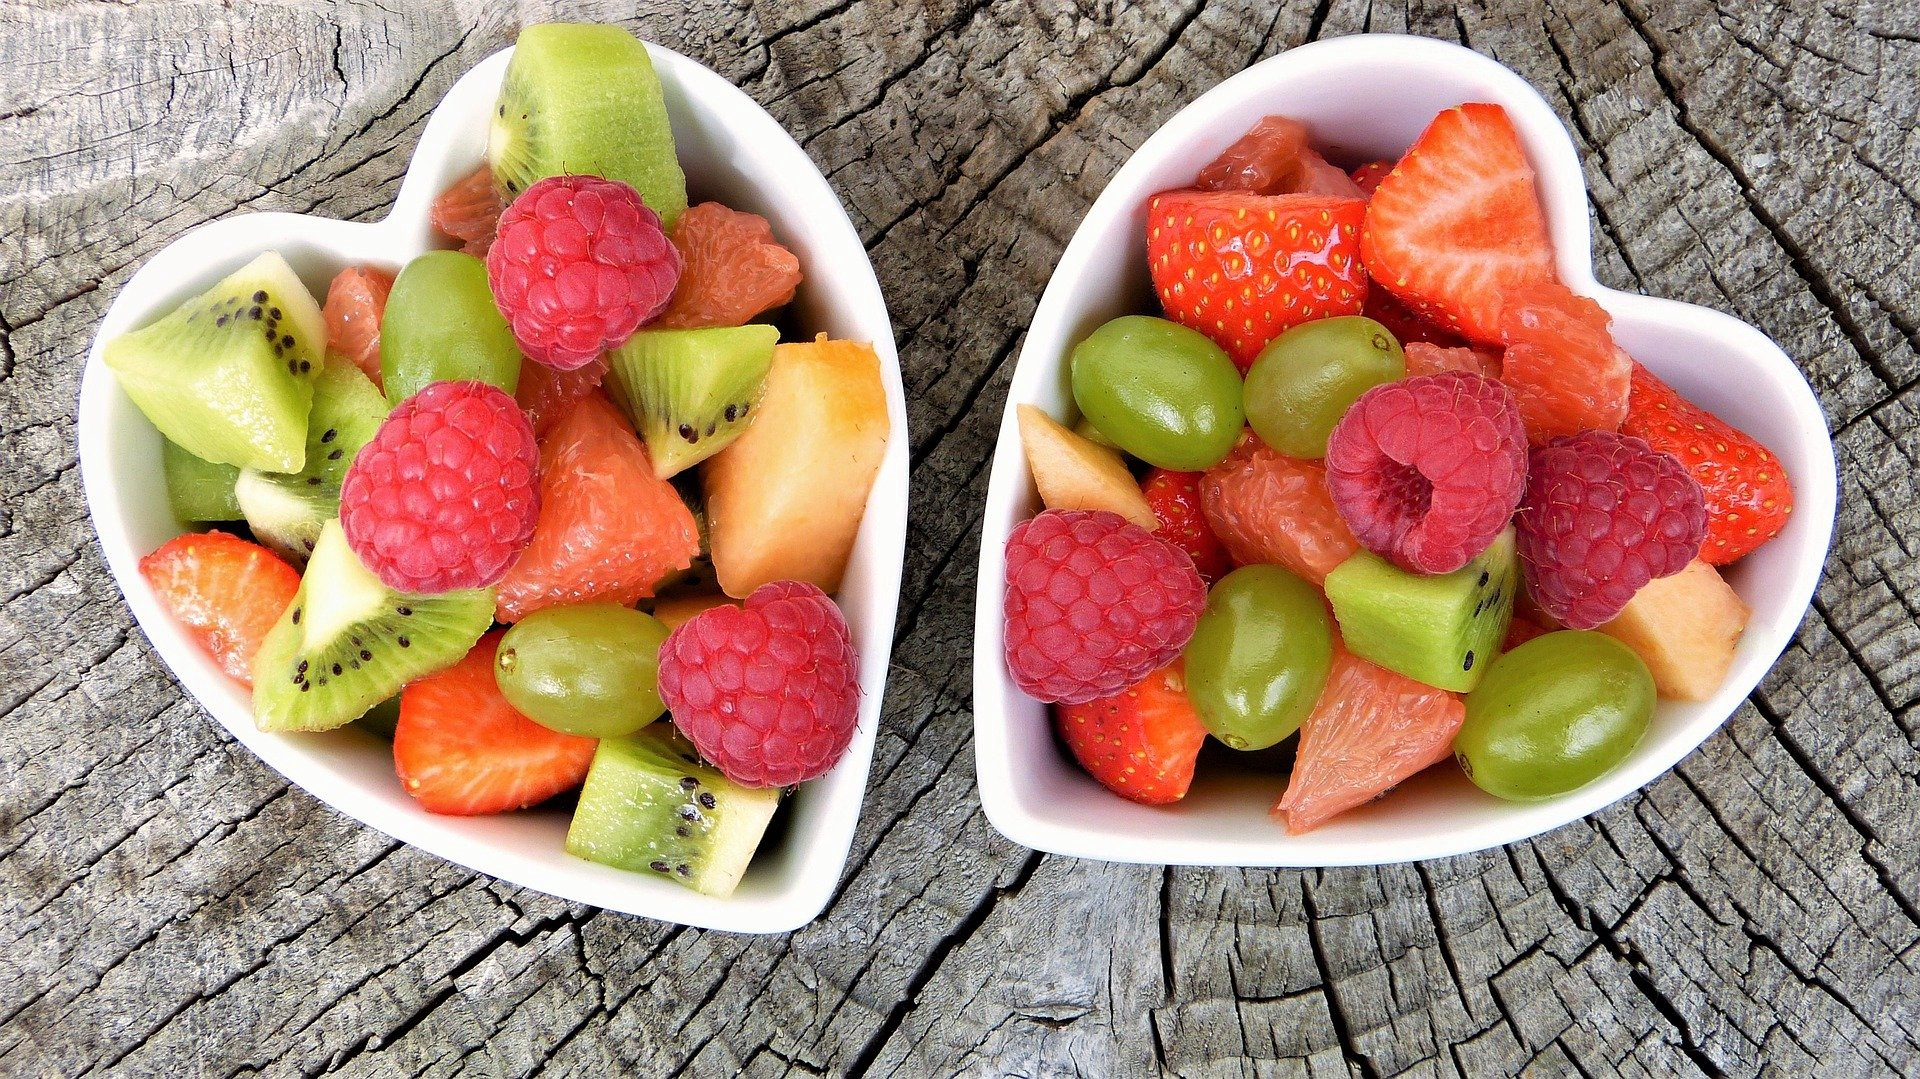 Healthy fruits in two heart-shaped bowls